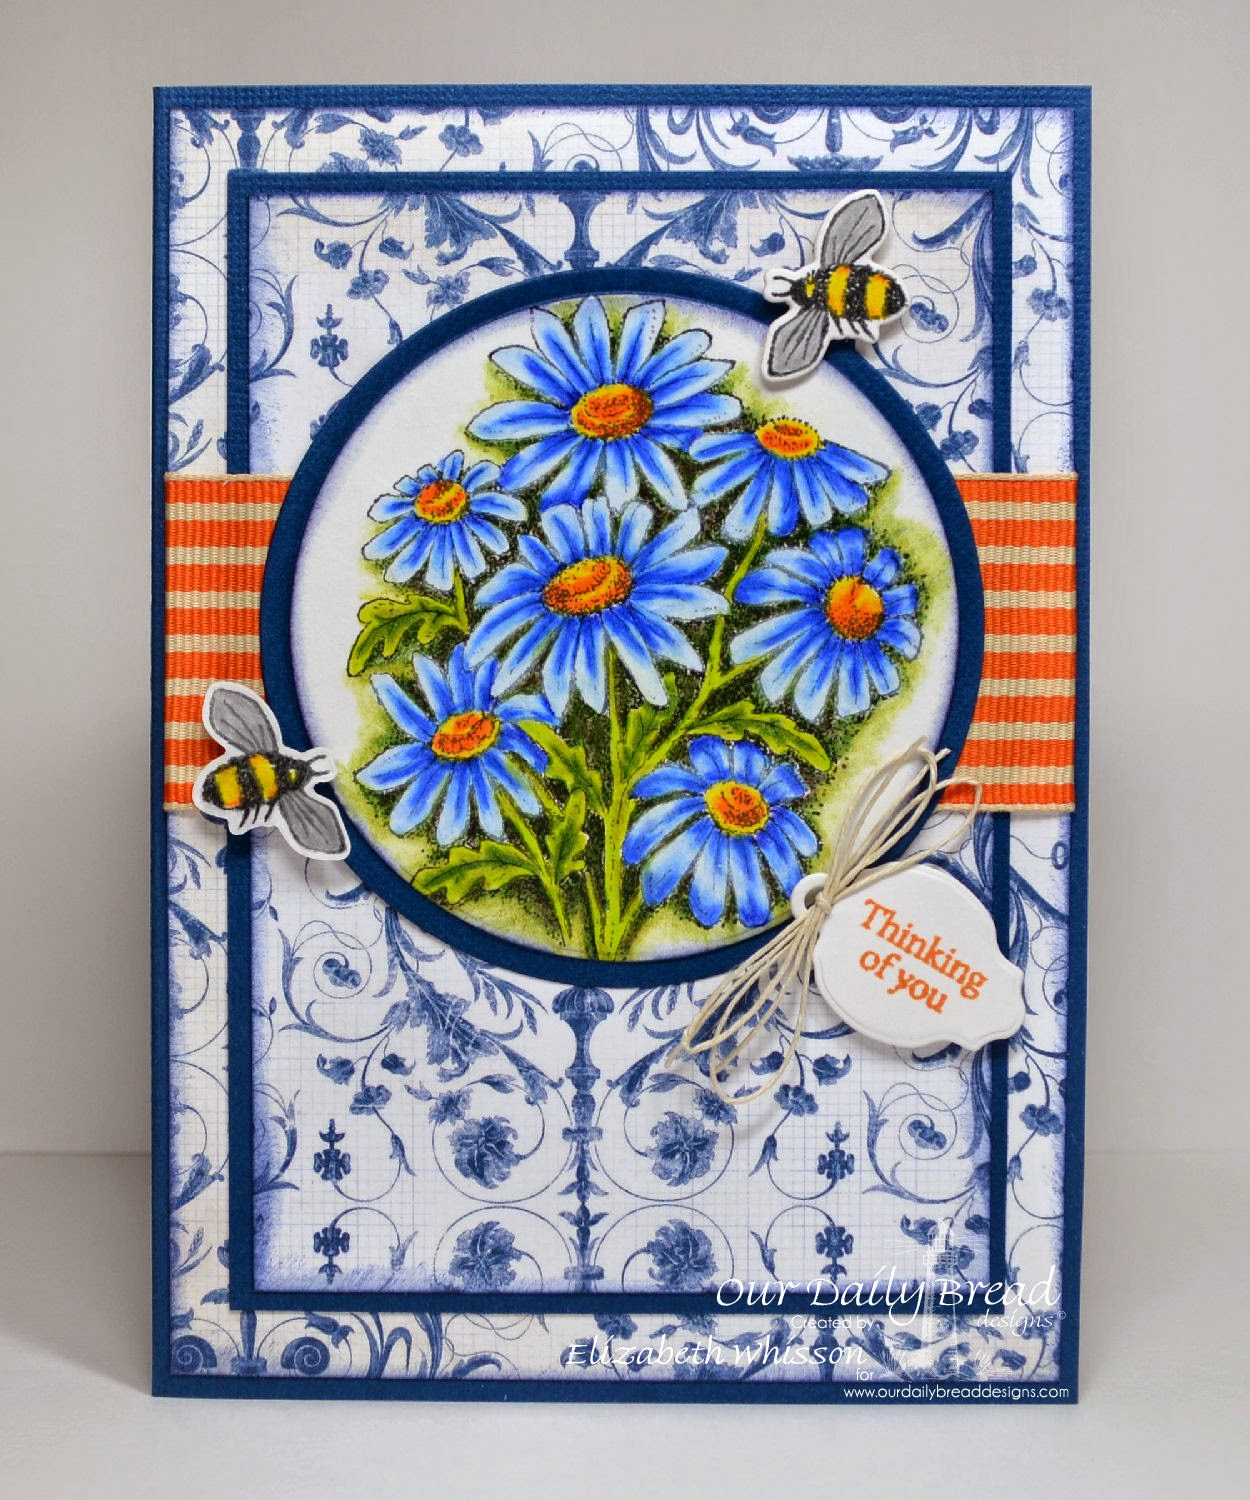 Elizabeth Whisson, Prismacolor pencils, handmade card, Thinking of You, bees, daisy, daisies, contrast, Mini Tag Sentiments, ODBD, Zinnia, Matting Circles, Circle Ornament dies